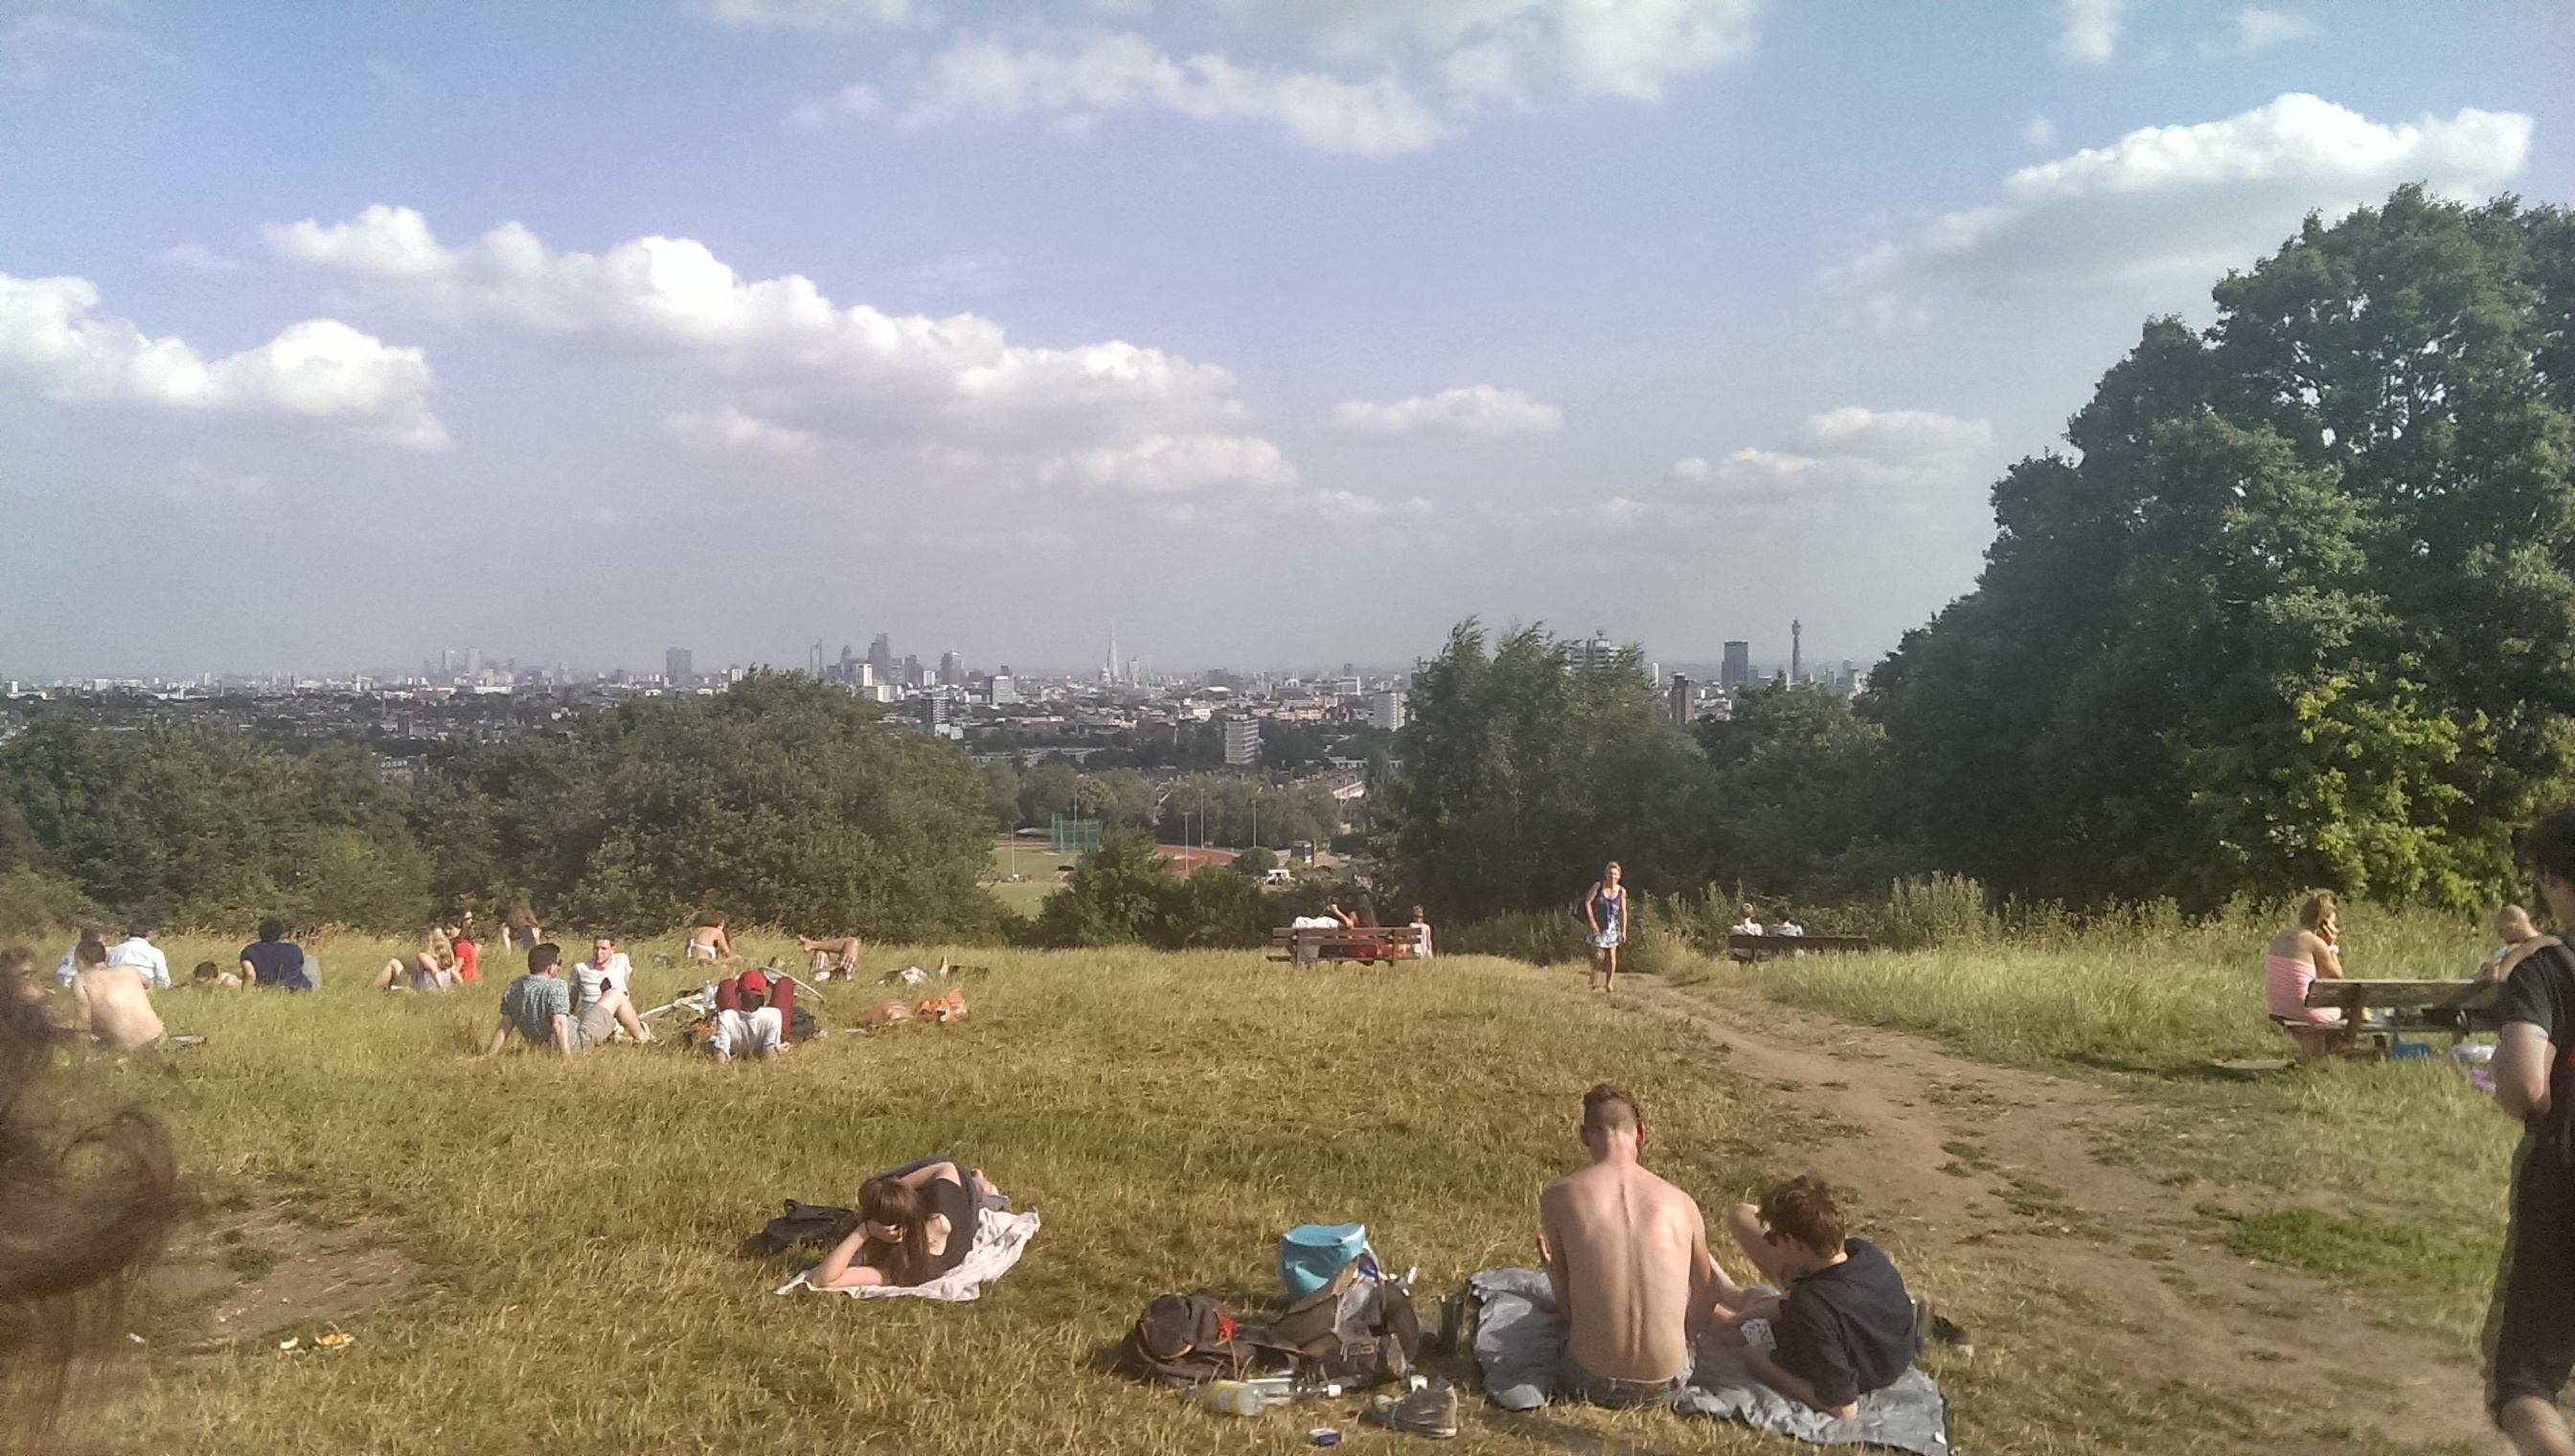 Summer in London views from Hampstead Heath and Ealing